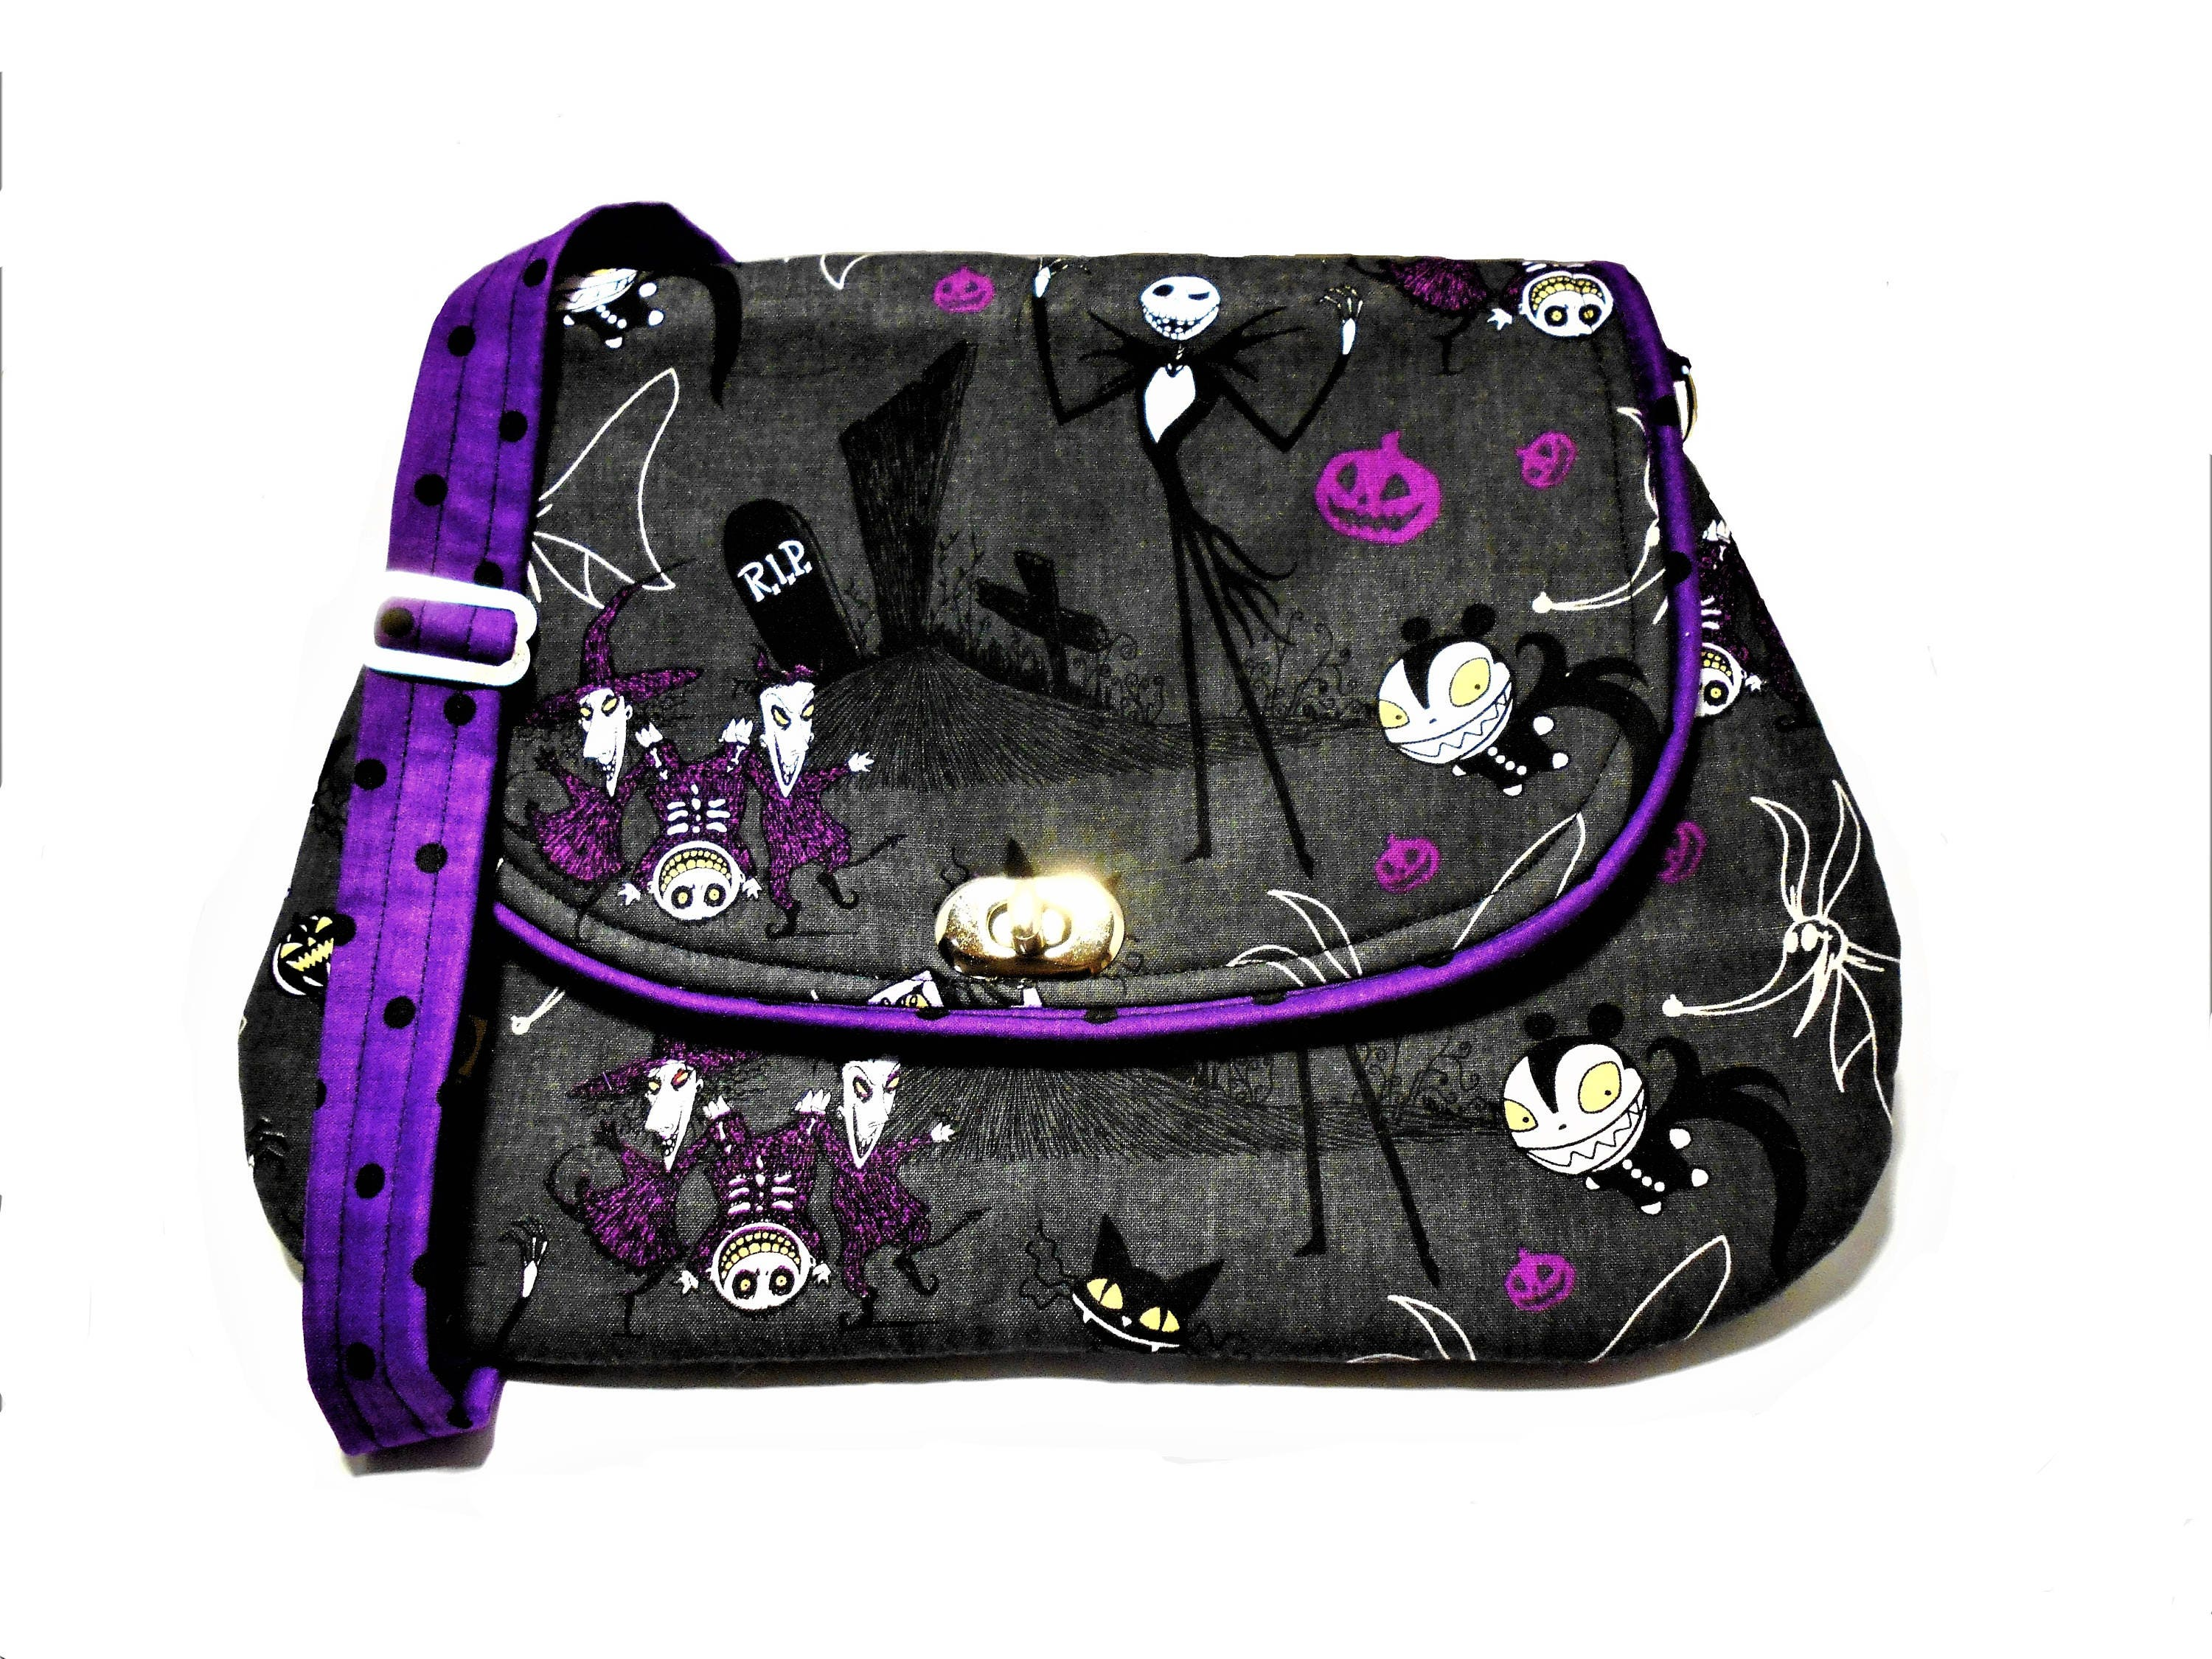 The Nightmare Before Christmas Crossbody Messenger purse